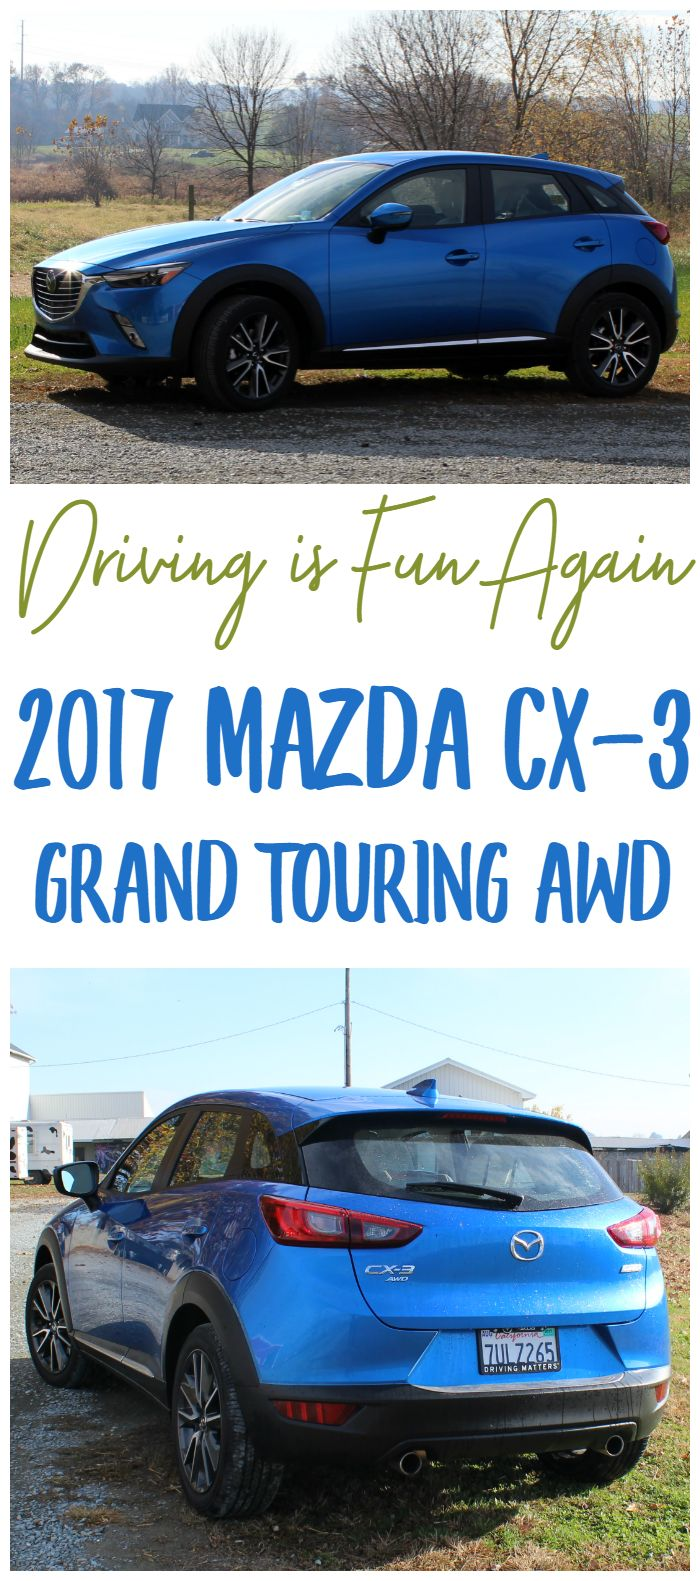 2017 mazda cx 3 grand touring review australia cars for you - Driving Is Fun Again With The 2017 Mazda Cx 3 Grand Touring Awd